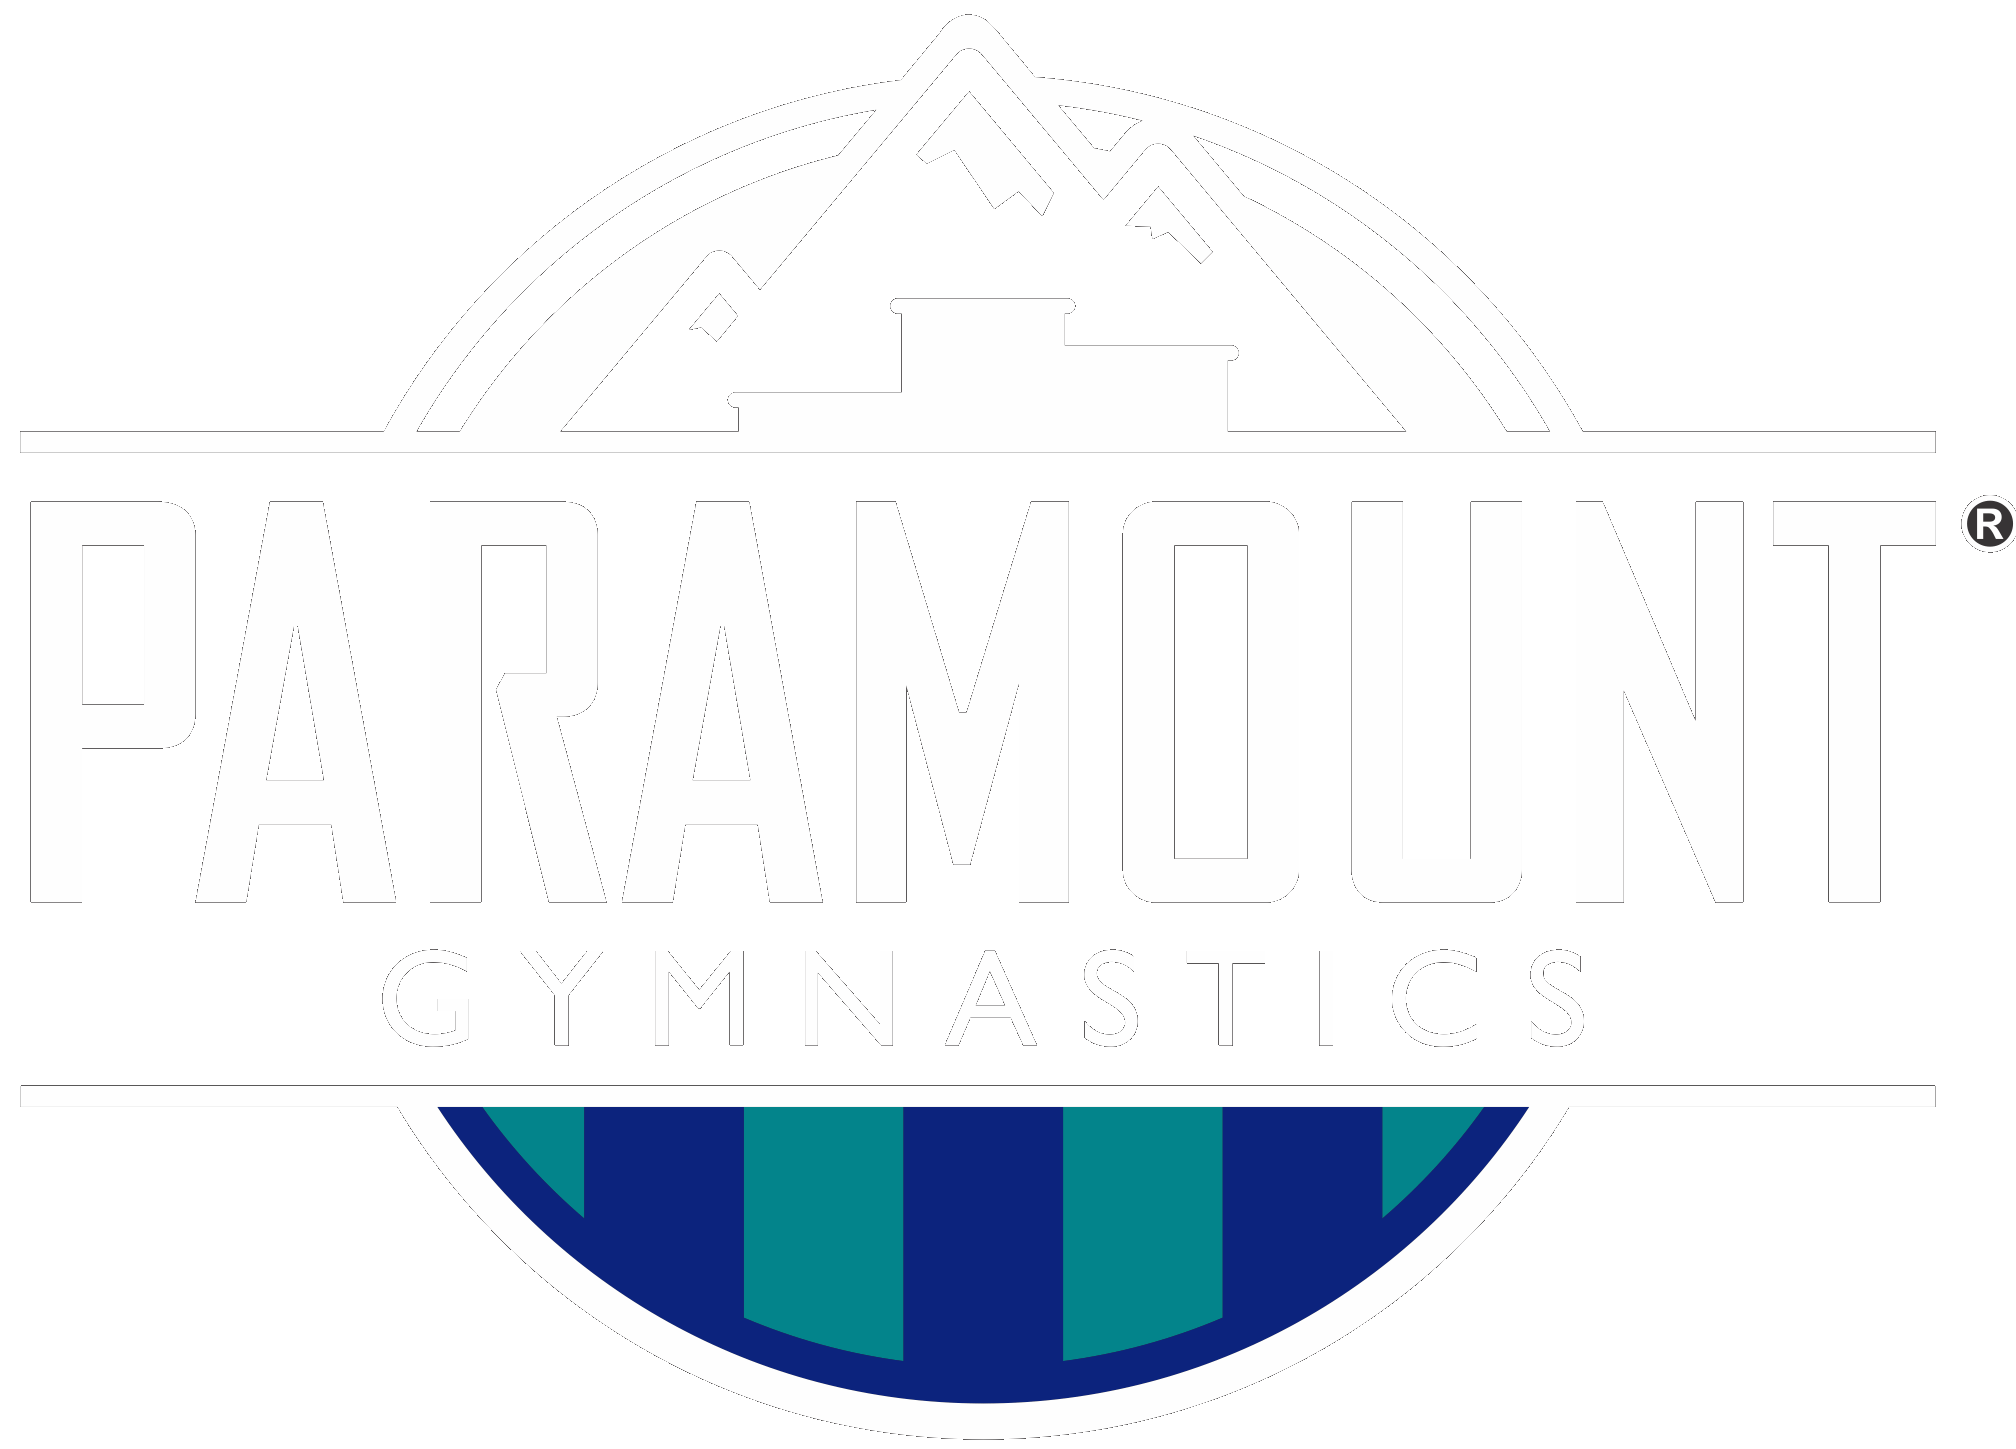 Welcome to Paramount Gymnastics